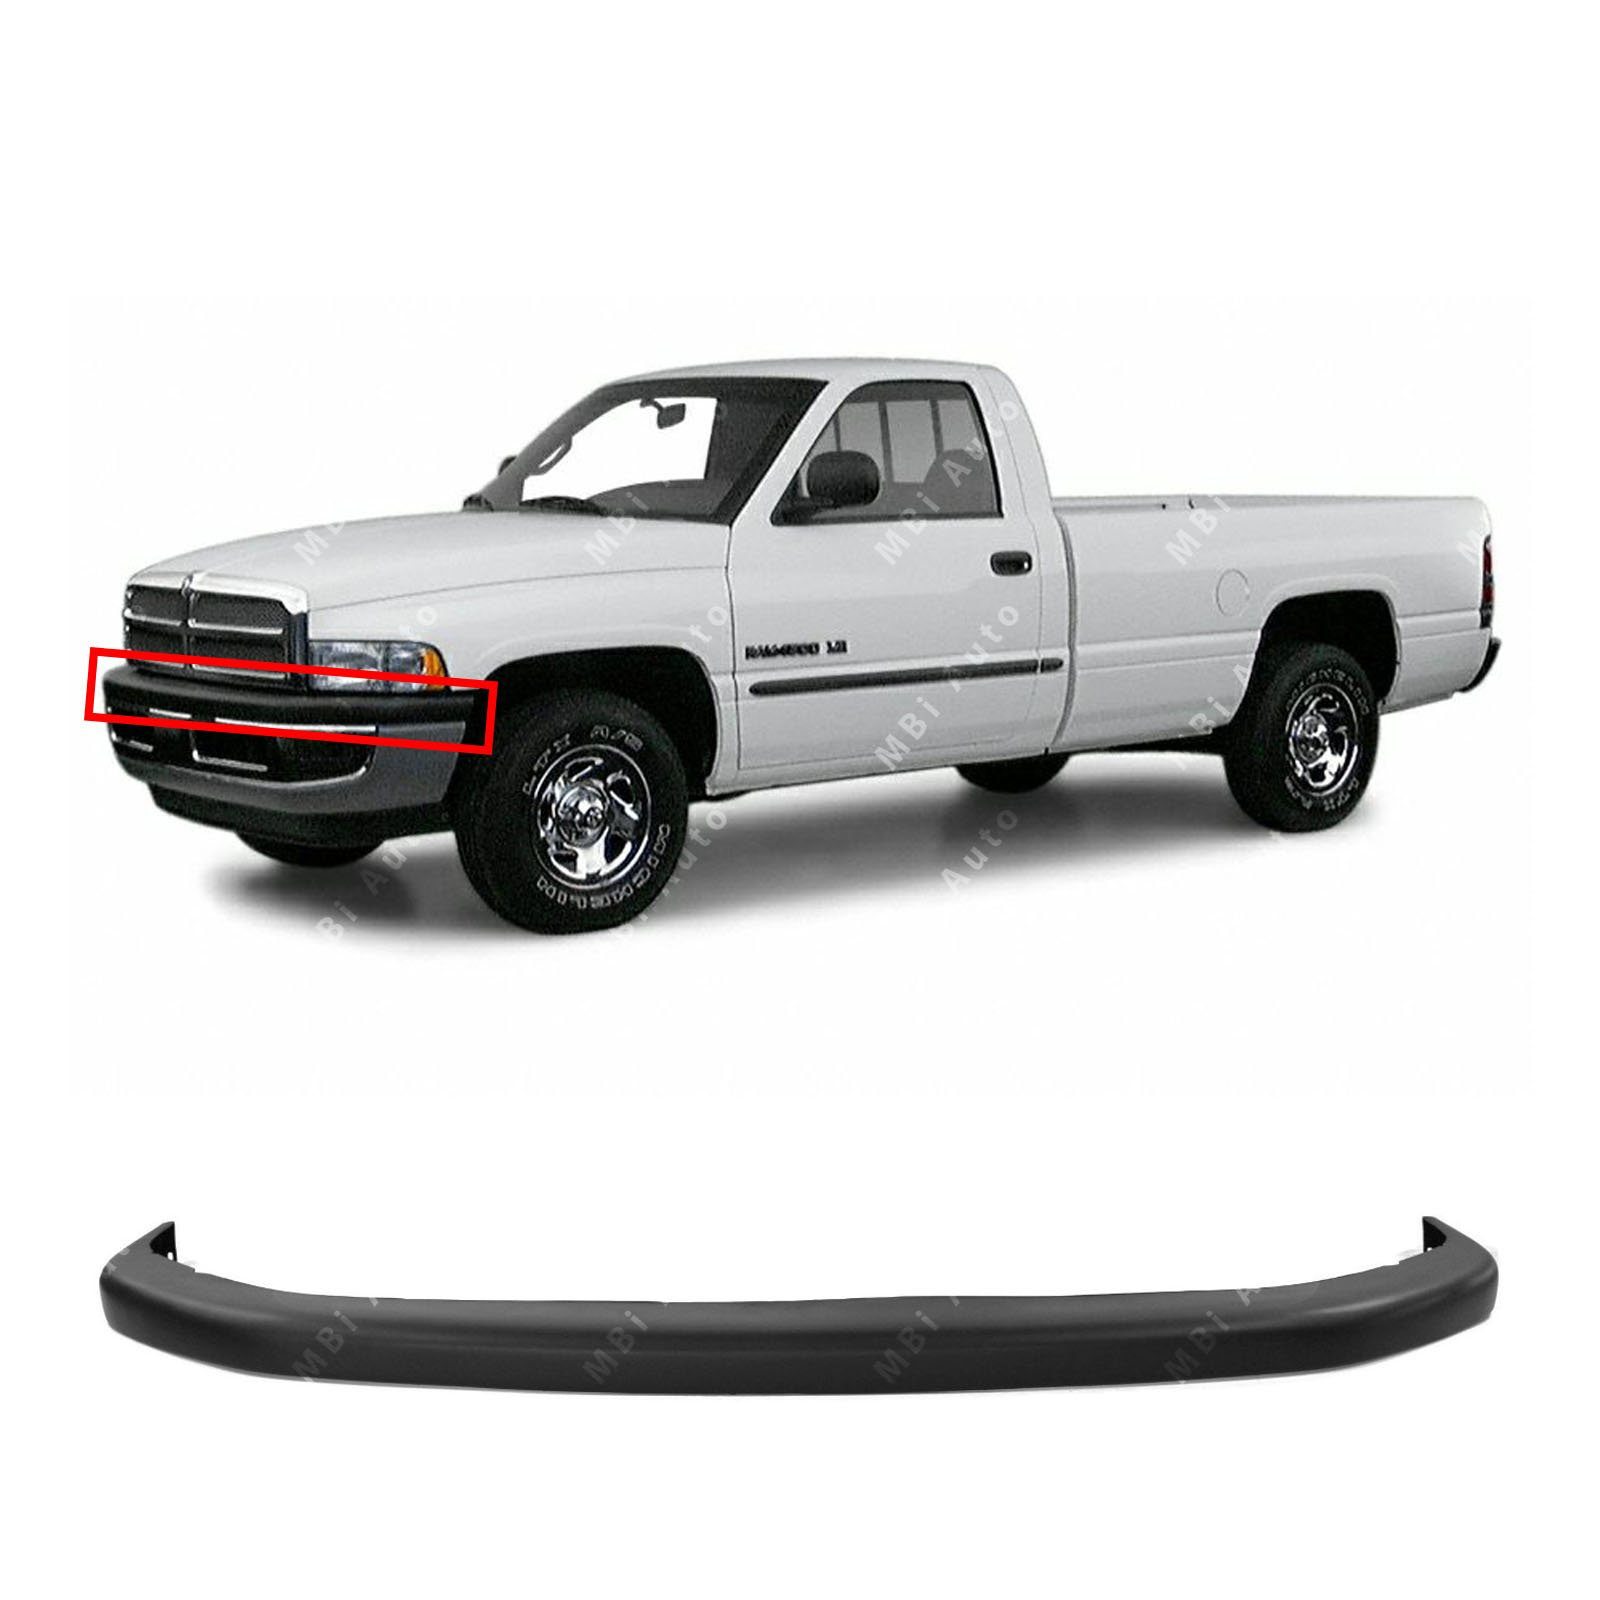 MBI AUTO - Textured, Black Front Upper Bumper Pad for 1994-2002 Dodge RAM 1500 2500 3500 94-02, CH1000160